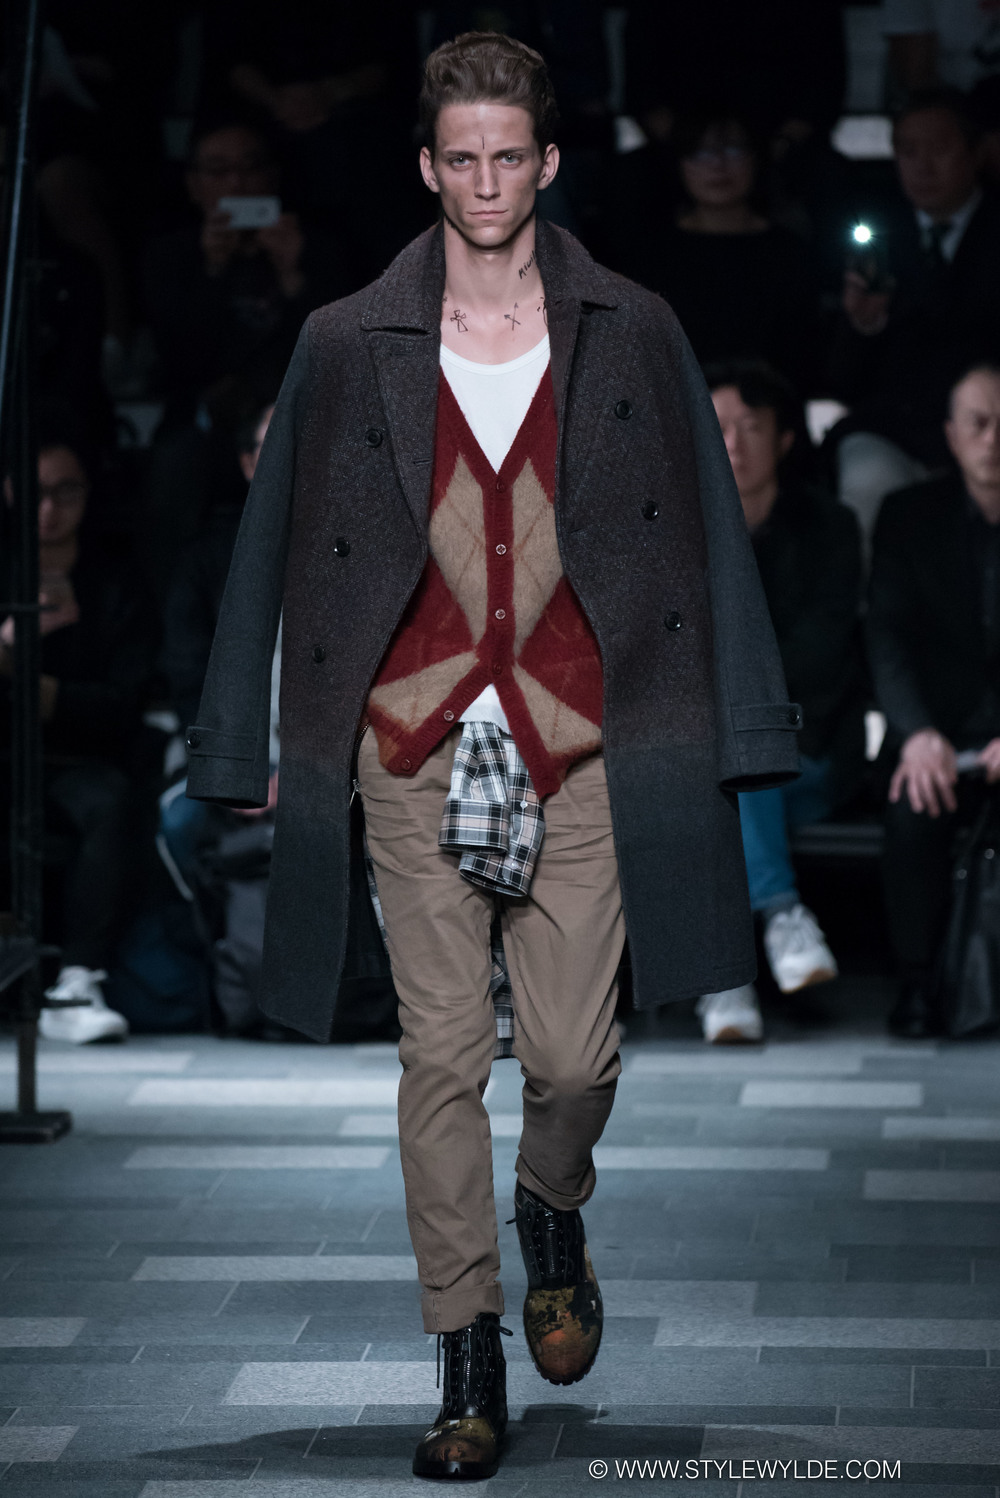 stylewylde_5351_pour_les_hommes_fw_2016-15.jpg